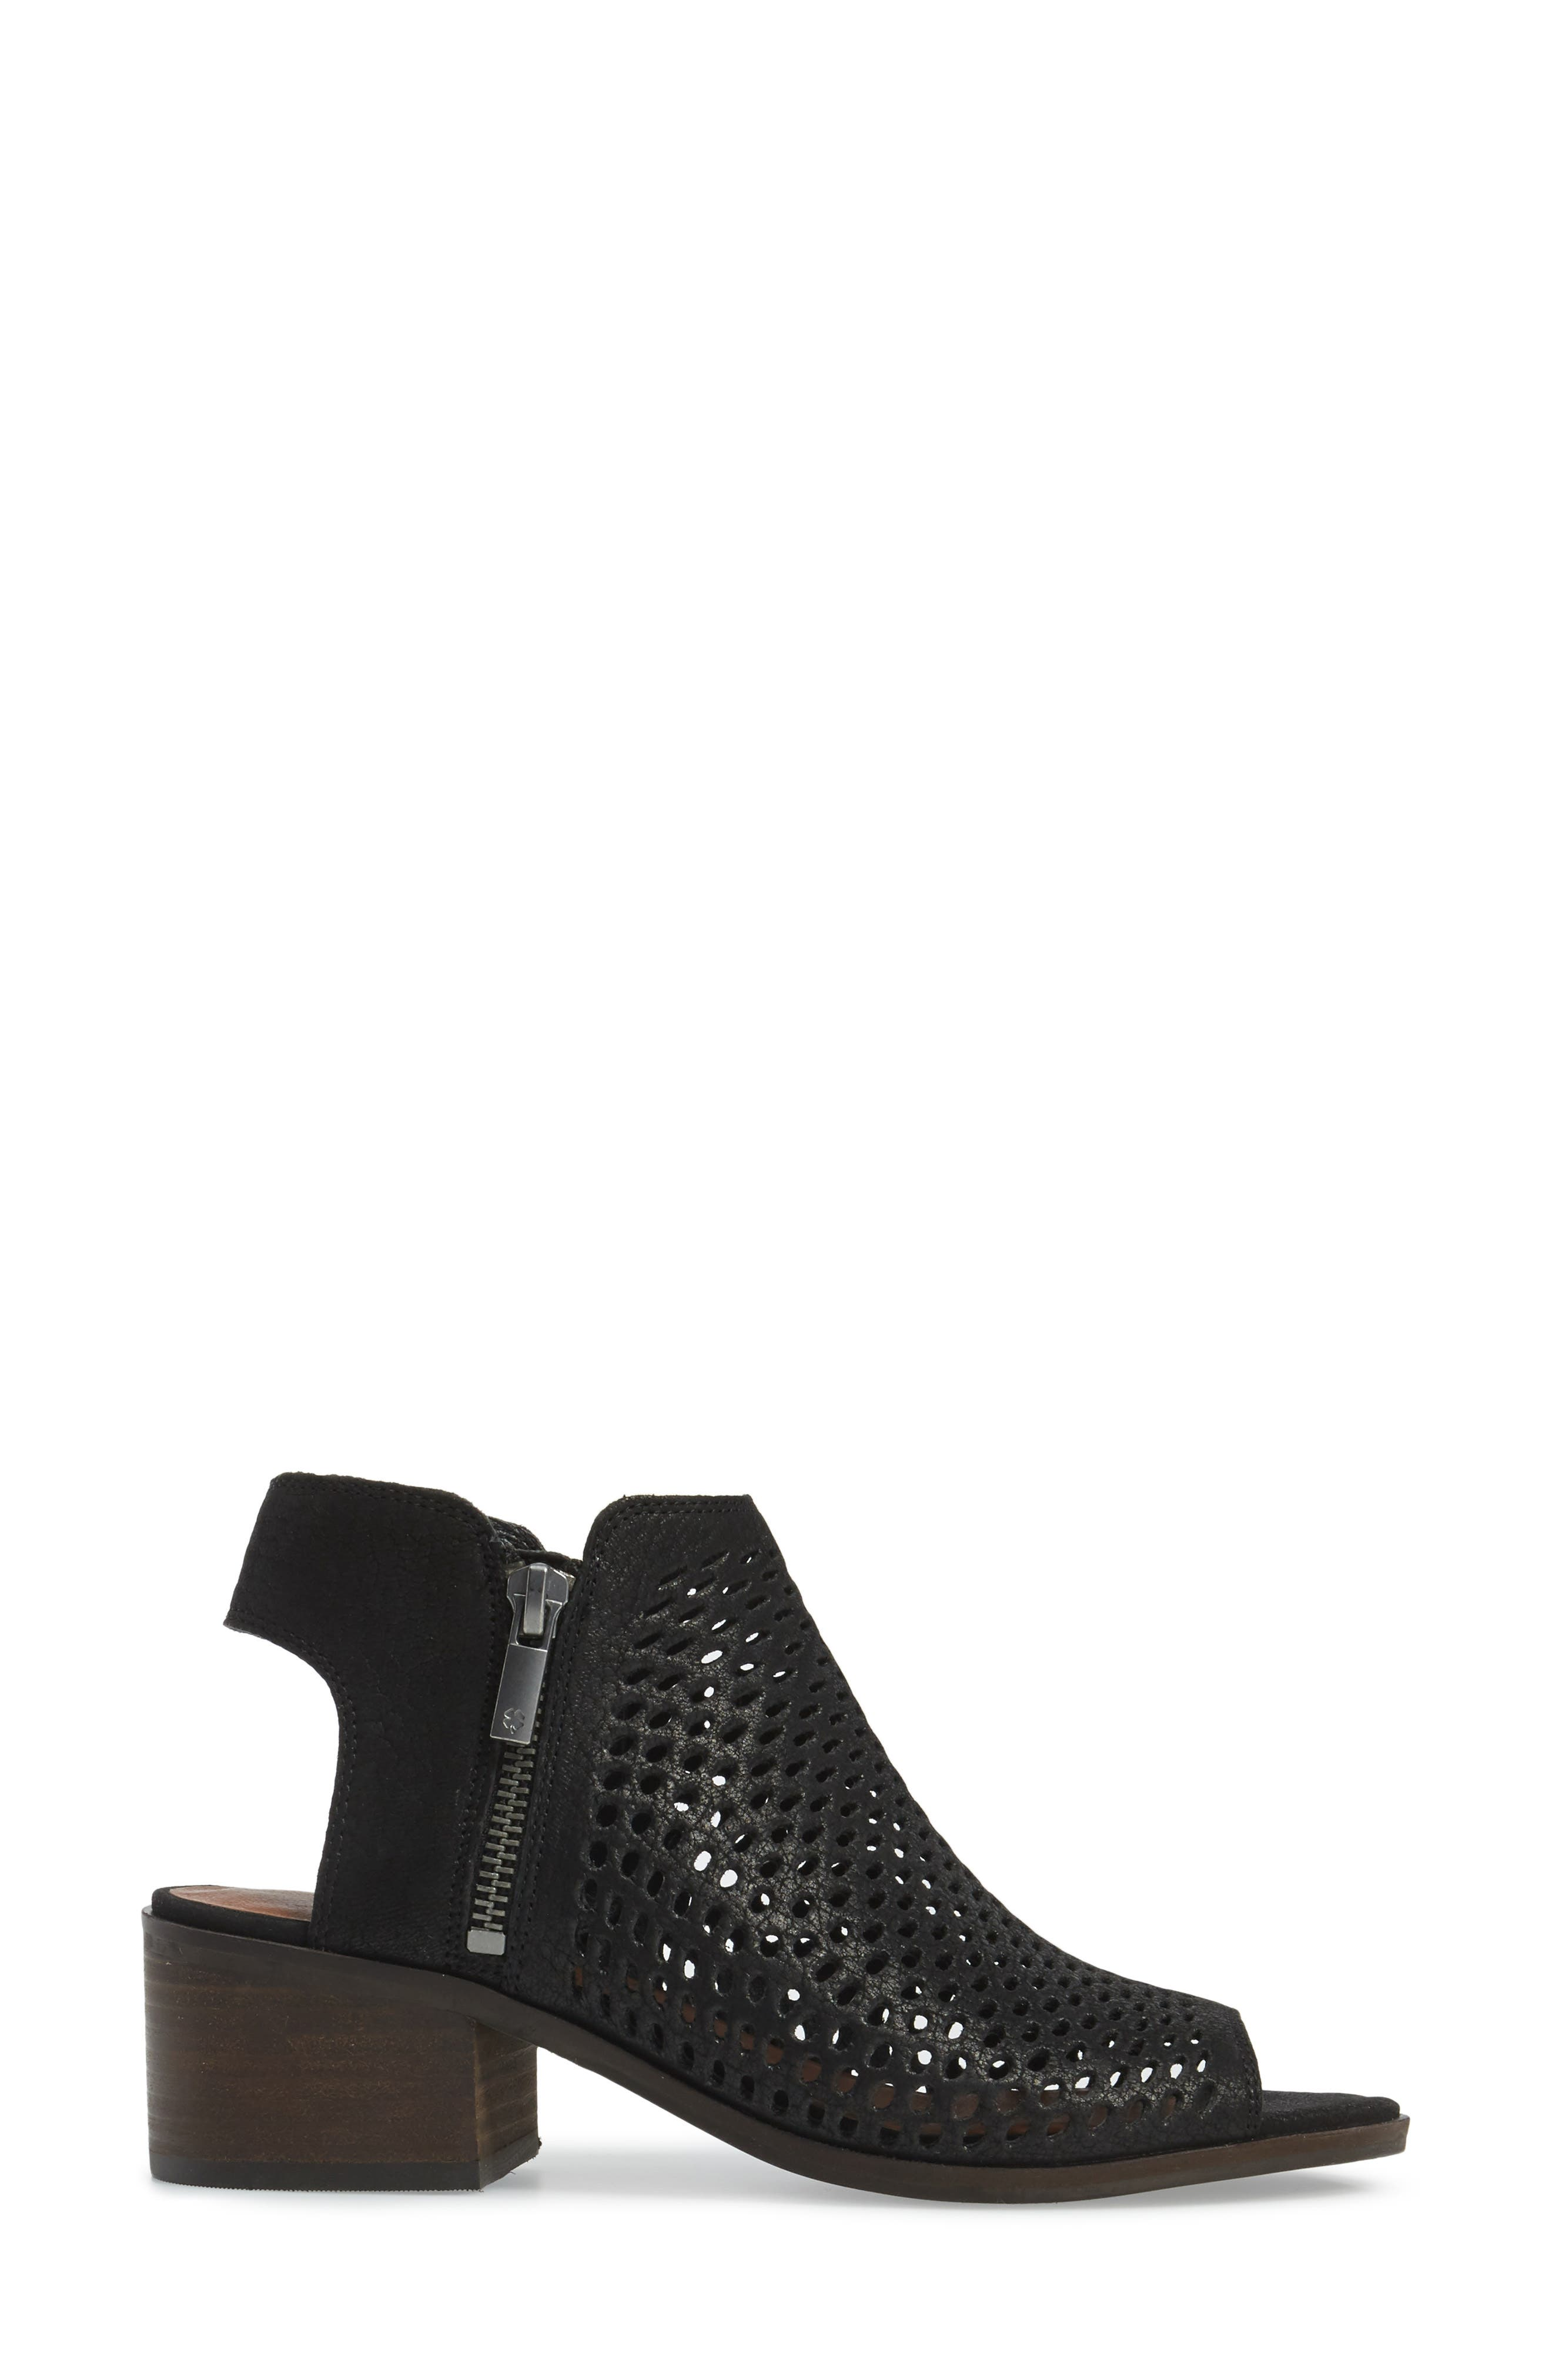 Nelwyna Perforated Bootie Sandal,                             Alternate thumbnail 3, color,                             001